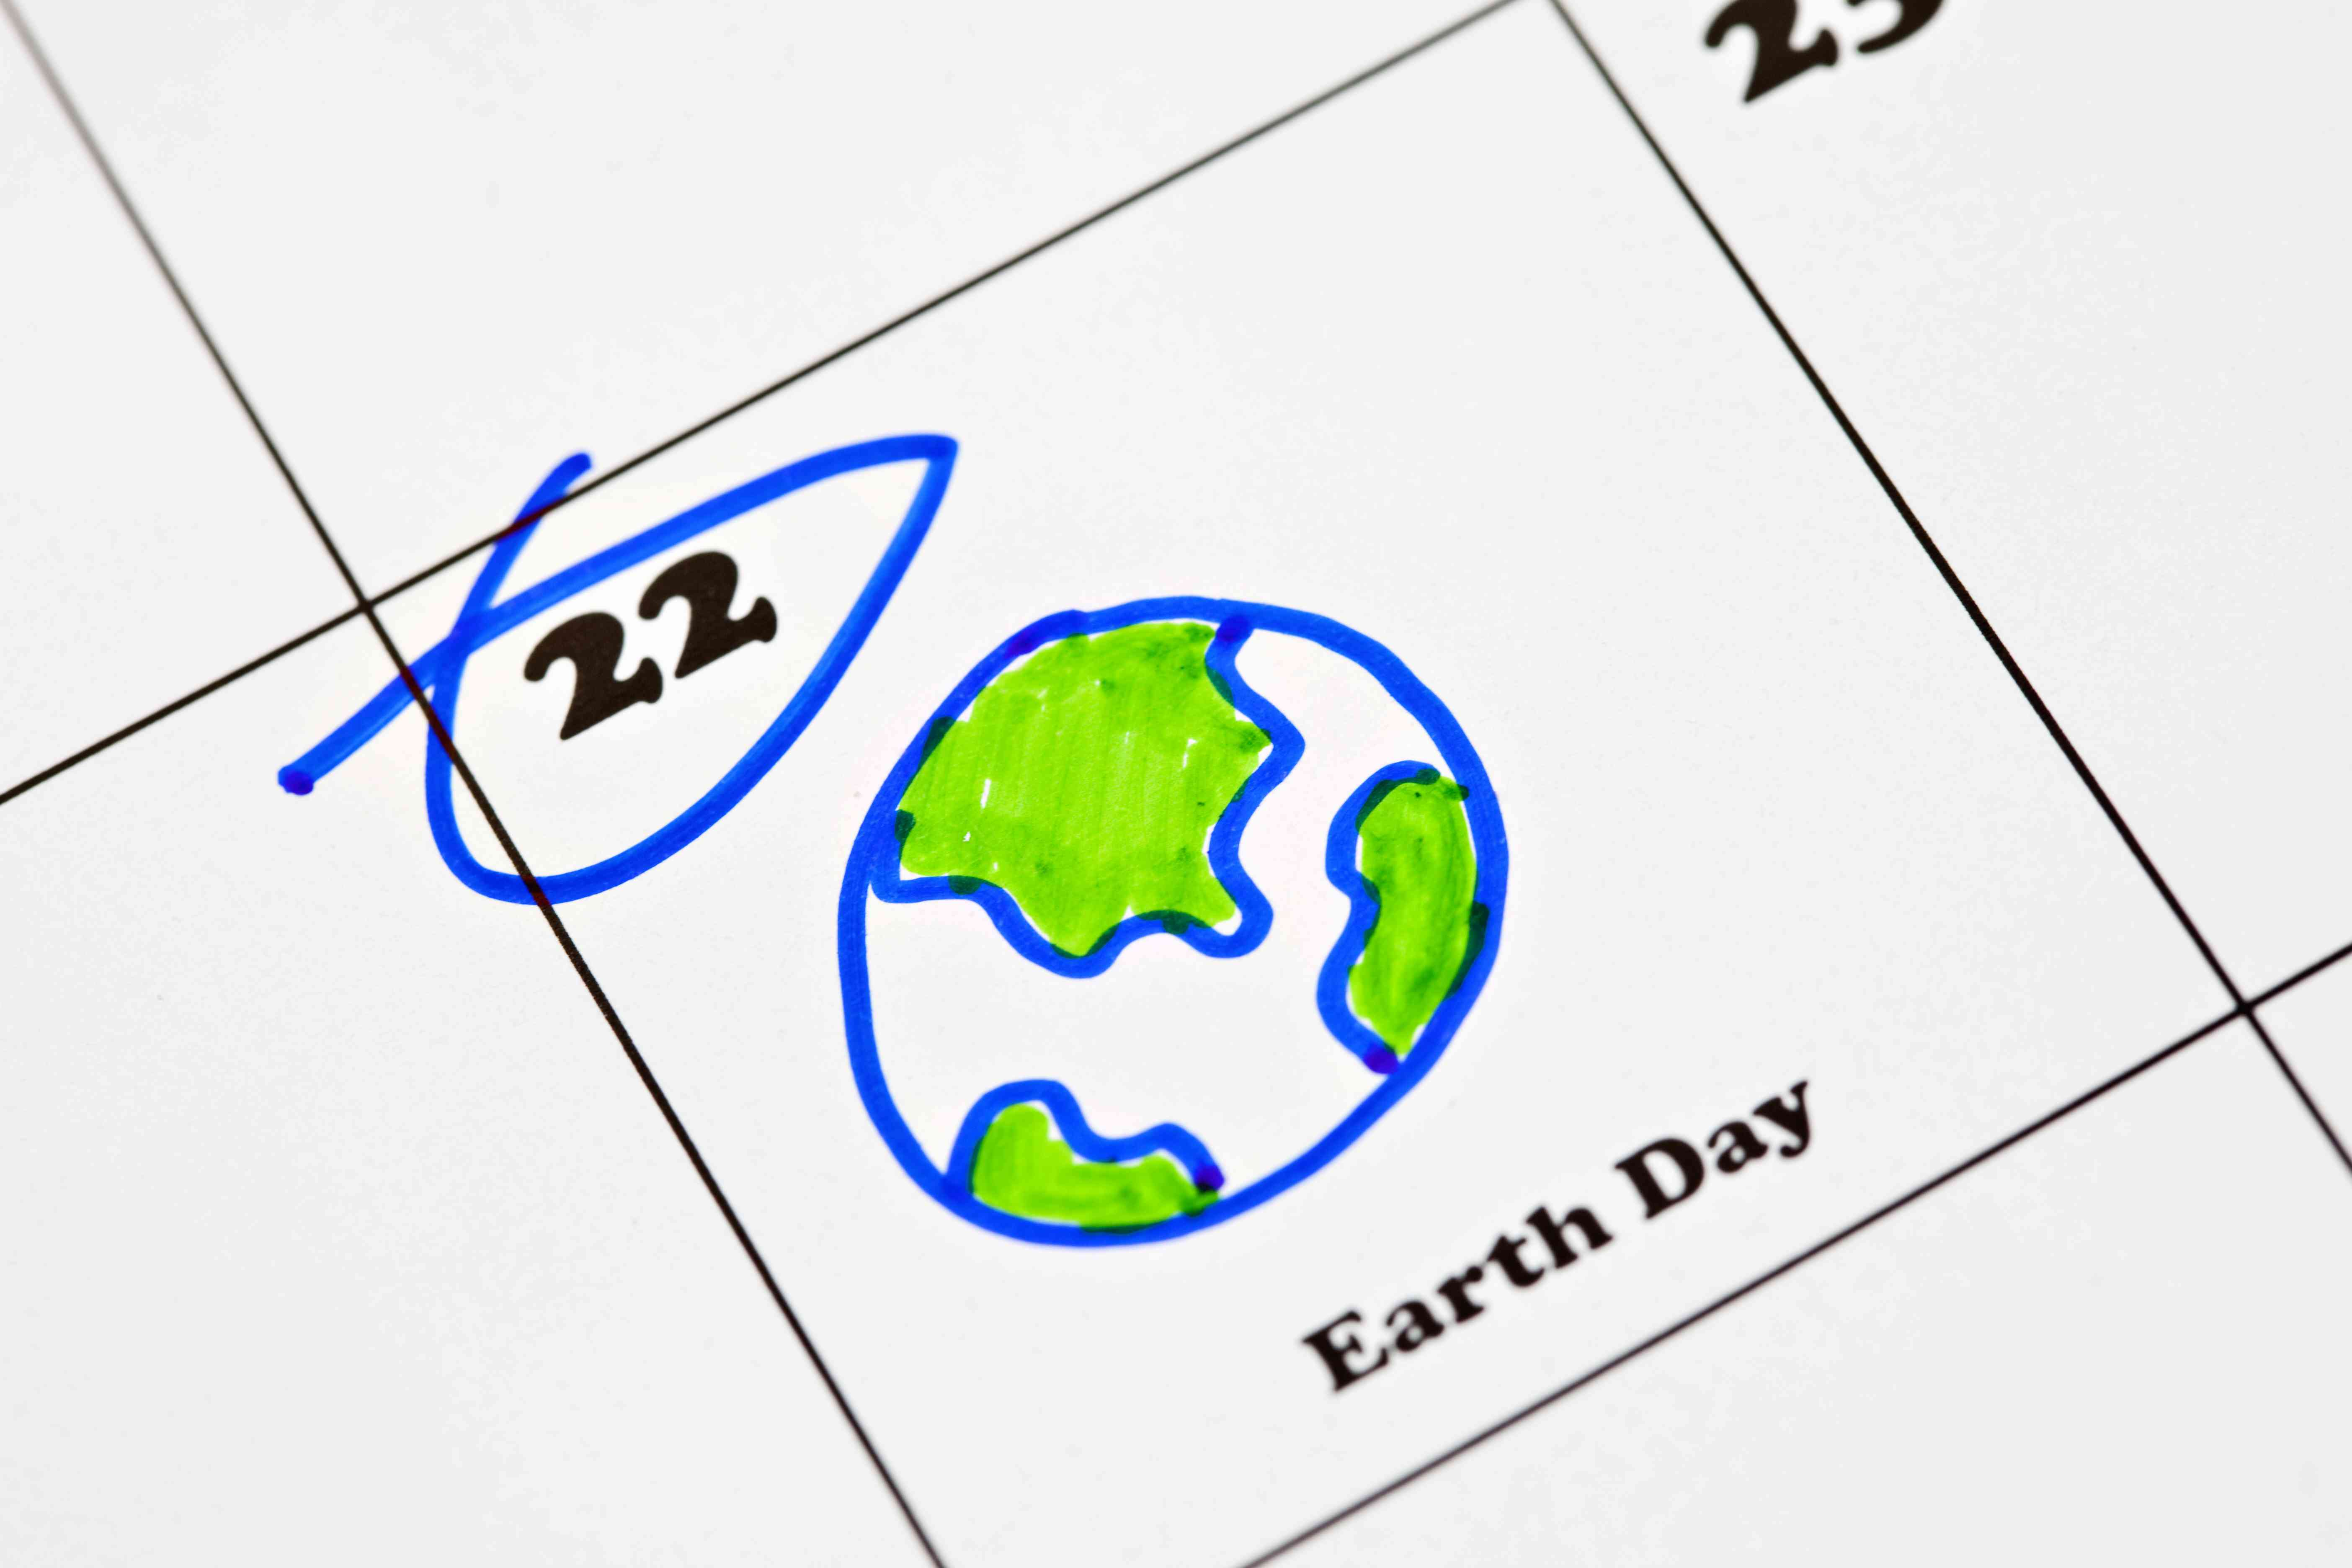 Calendar showing Earth Day